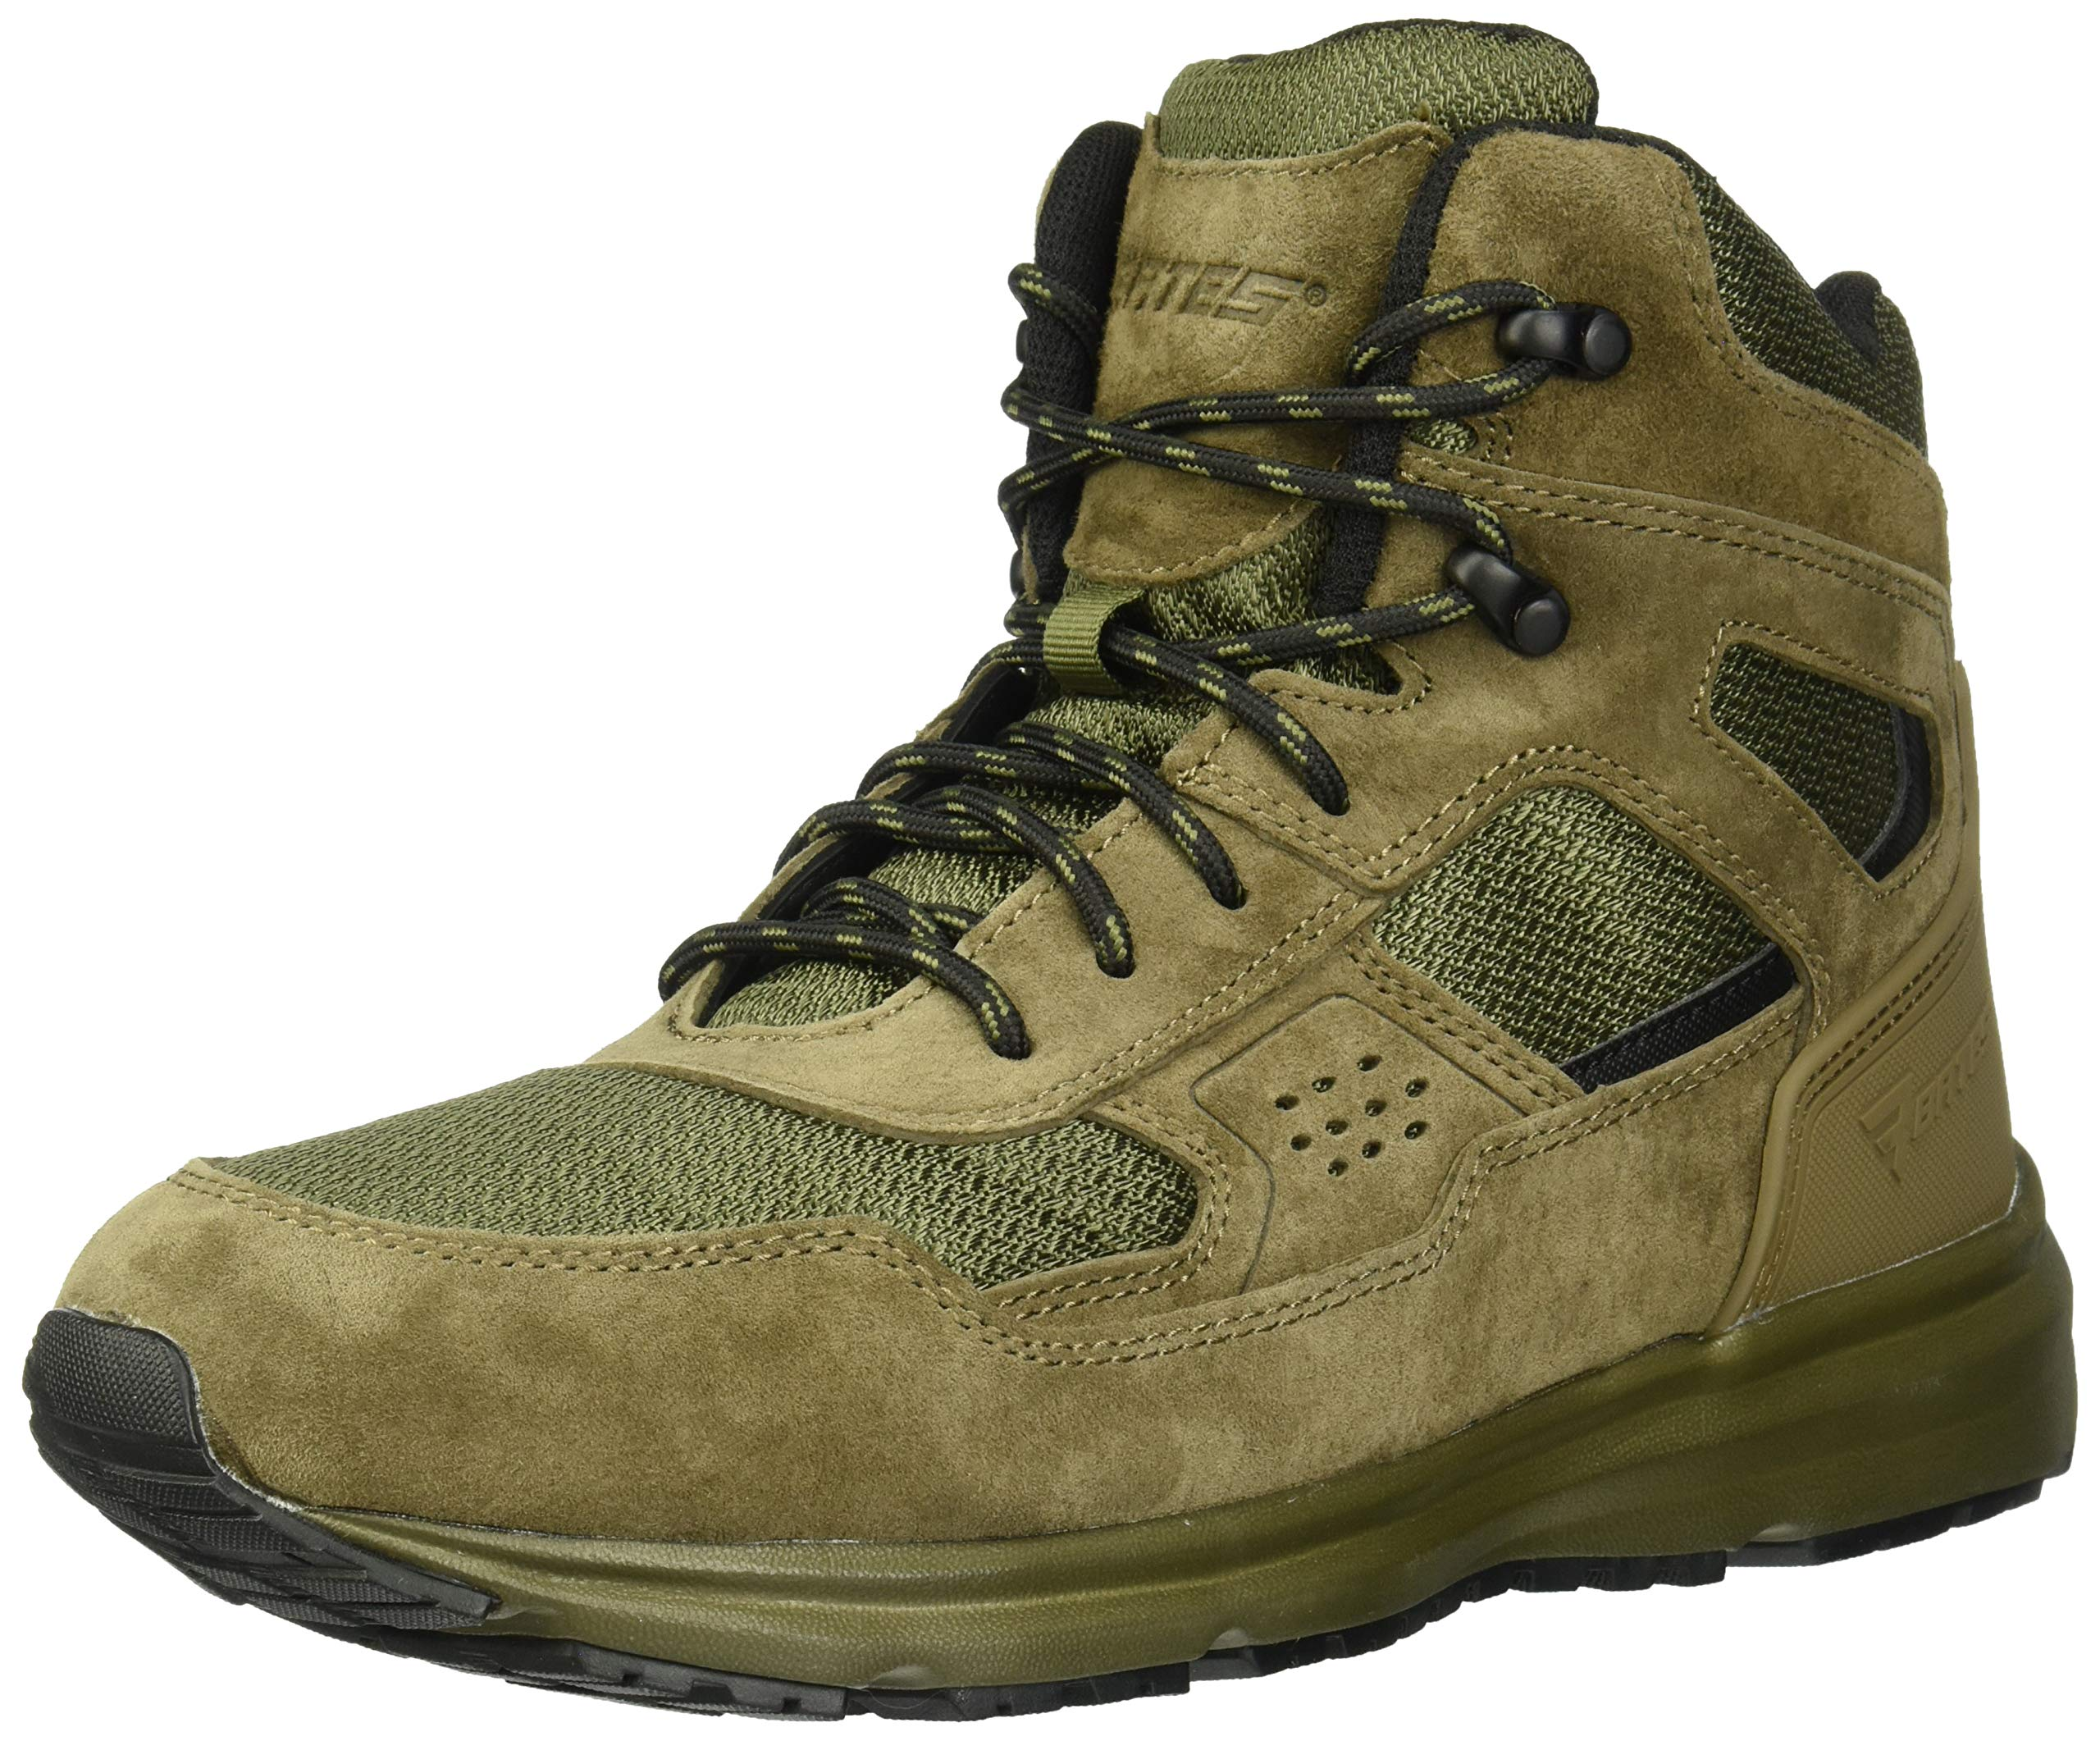 Bates Men's Raide Sport Mid Fire and Safety Boot, Canteen, 8.5 M US